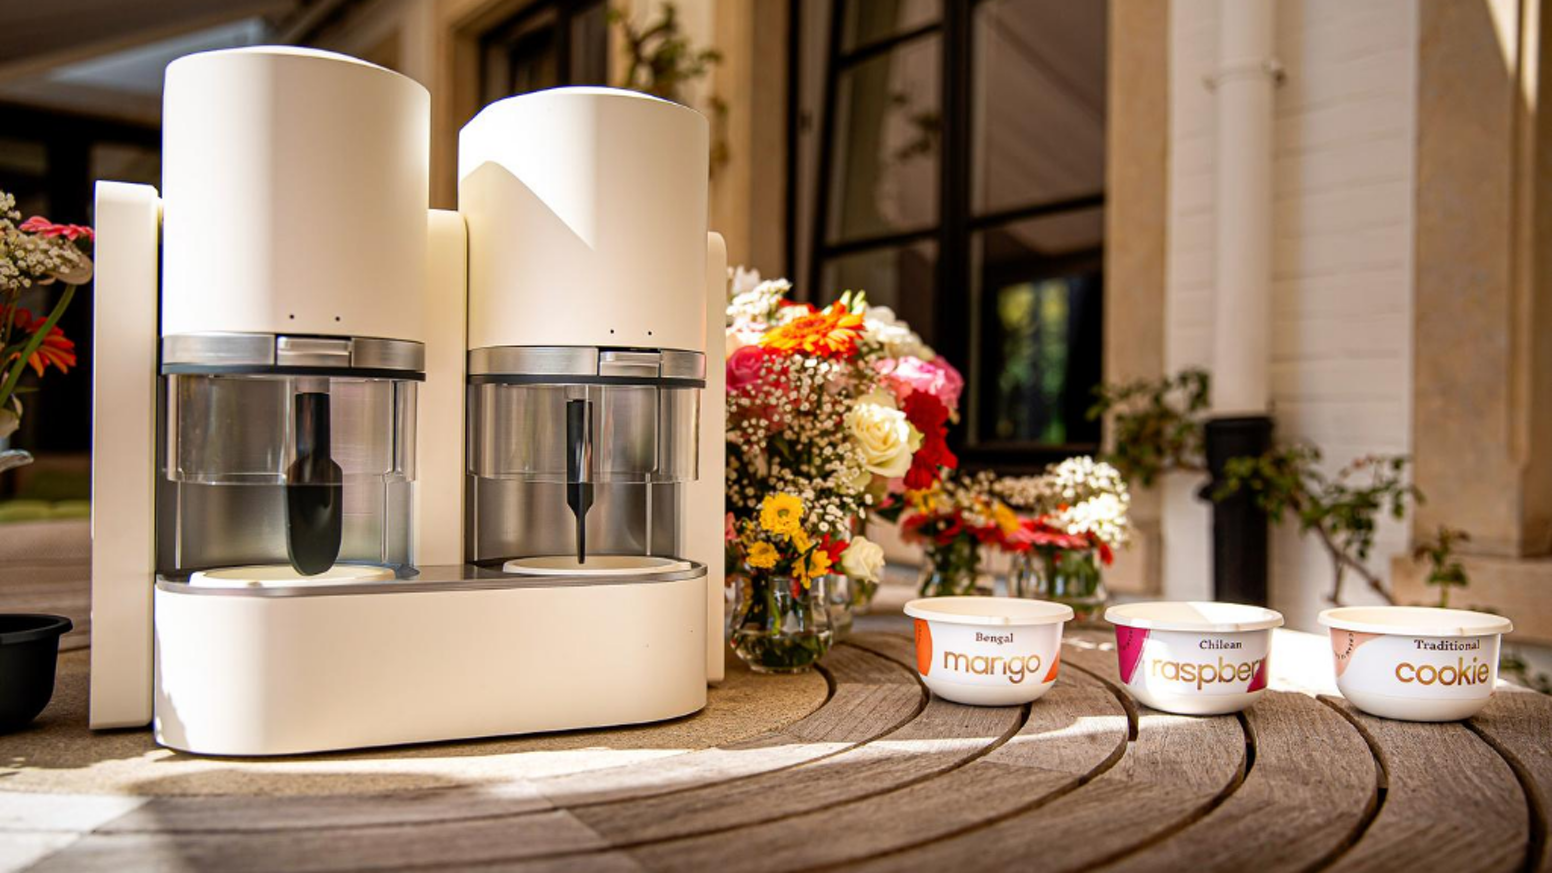 Open an ice cream parlor on your countertop. Spin a luscious cup of fresh ice cream in 360 seconds. All year long.